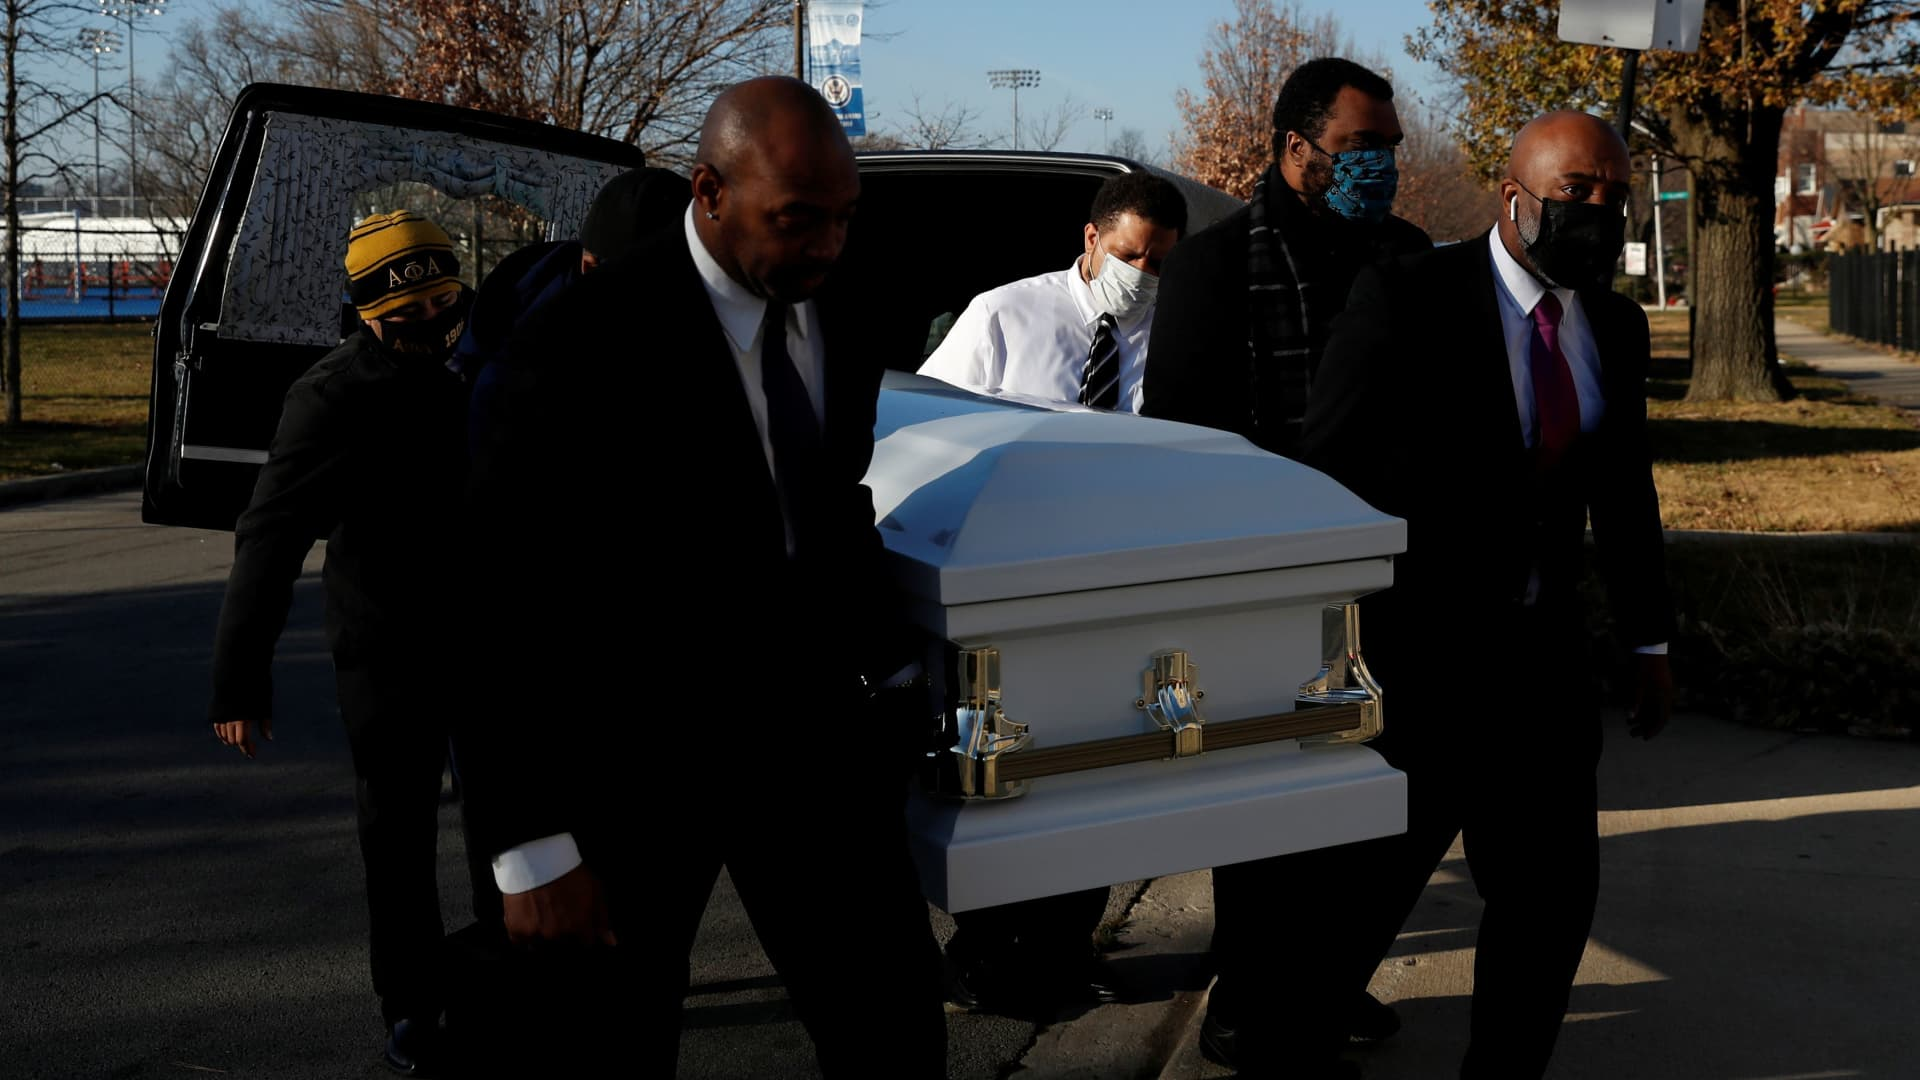 Sammie Michael Dent, Jr., the grandson of Florence Bolton, a coronavirus disease (COVID-19) positive patient that died on November 2nd at Roseland Community Hospital, carries her casket into Zion Evangelical Lutheran Church on the South Side of Chicago, Illinois, U.S., December 9, 2020.